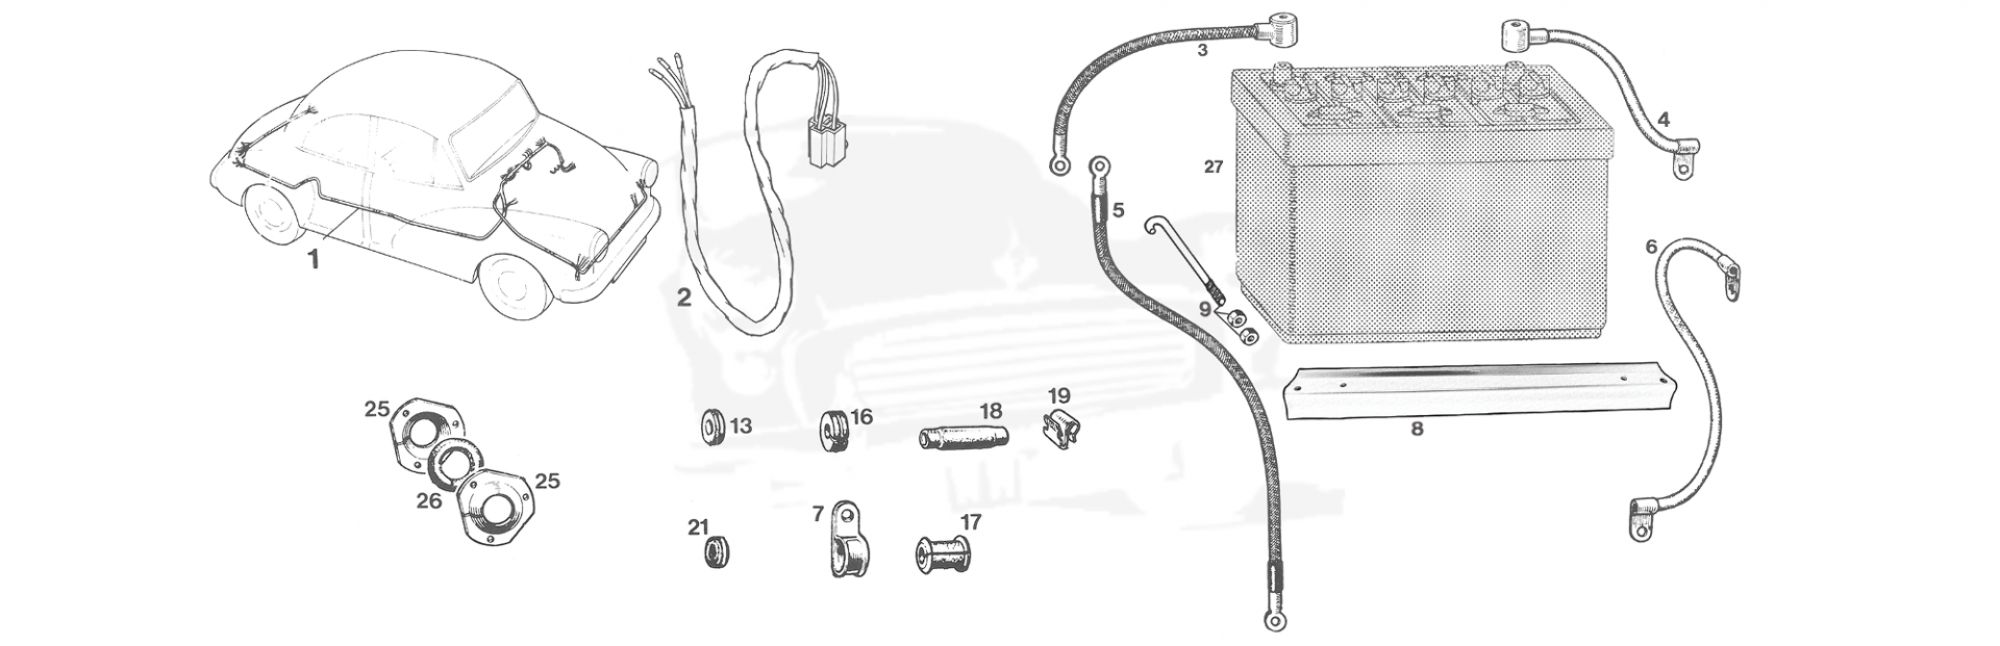 Wiring Harness  U0026 Battery